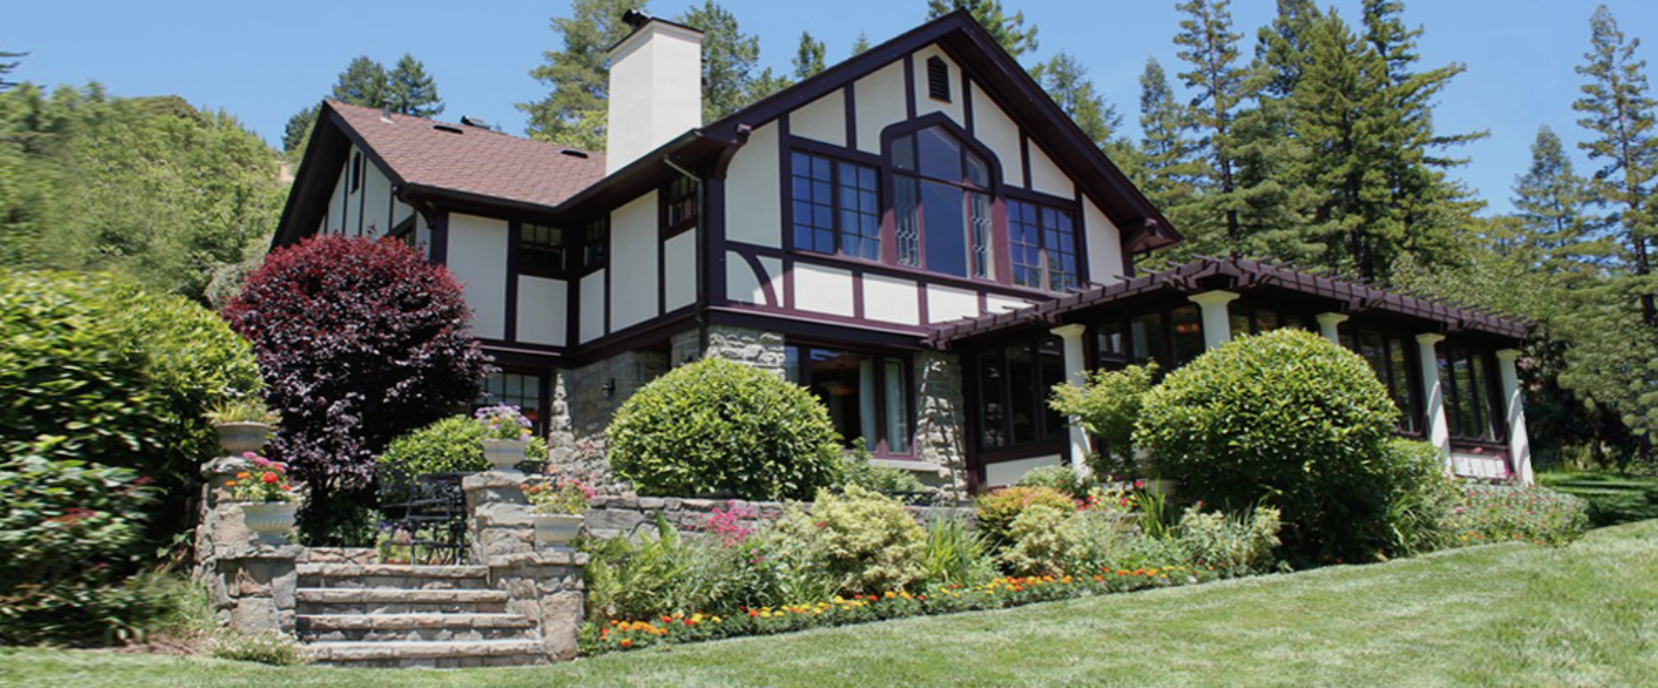 banner image is of image shows the exterior of the julia morgan redwood grove house